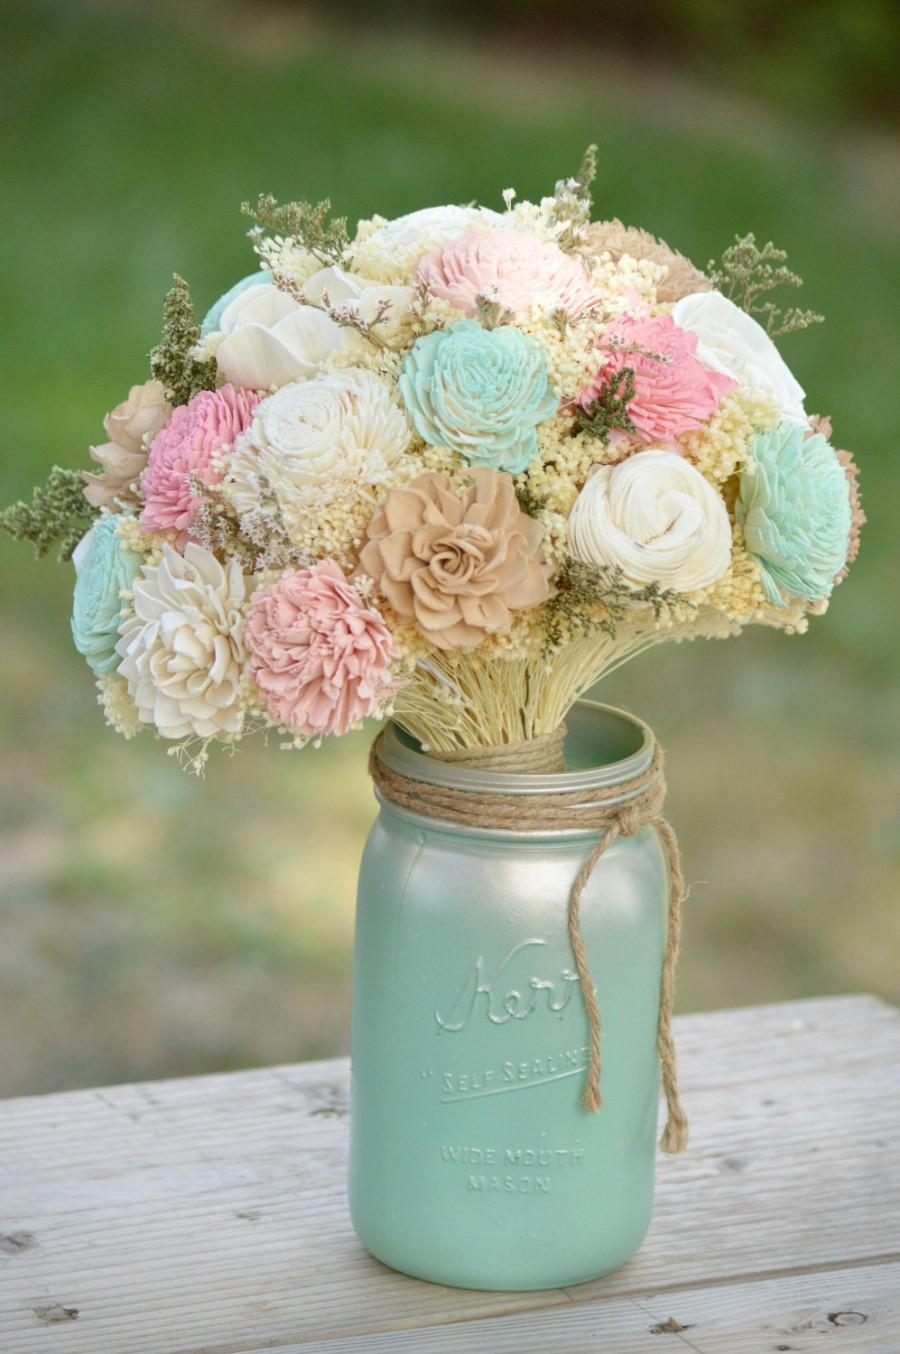 Свадьба - Custom Large Wedding Bridal Bouquet Sola Flowers and dried Flowers PInk, Ivory, Tan and Mint